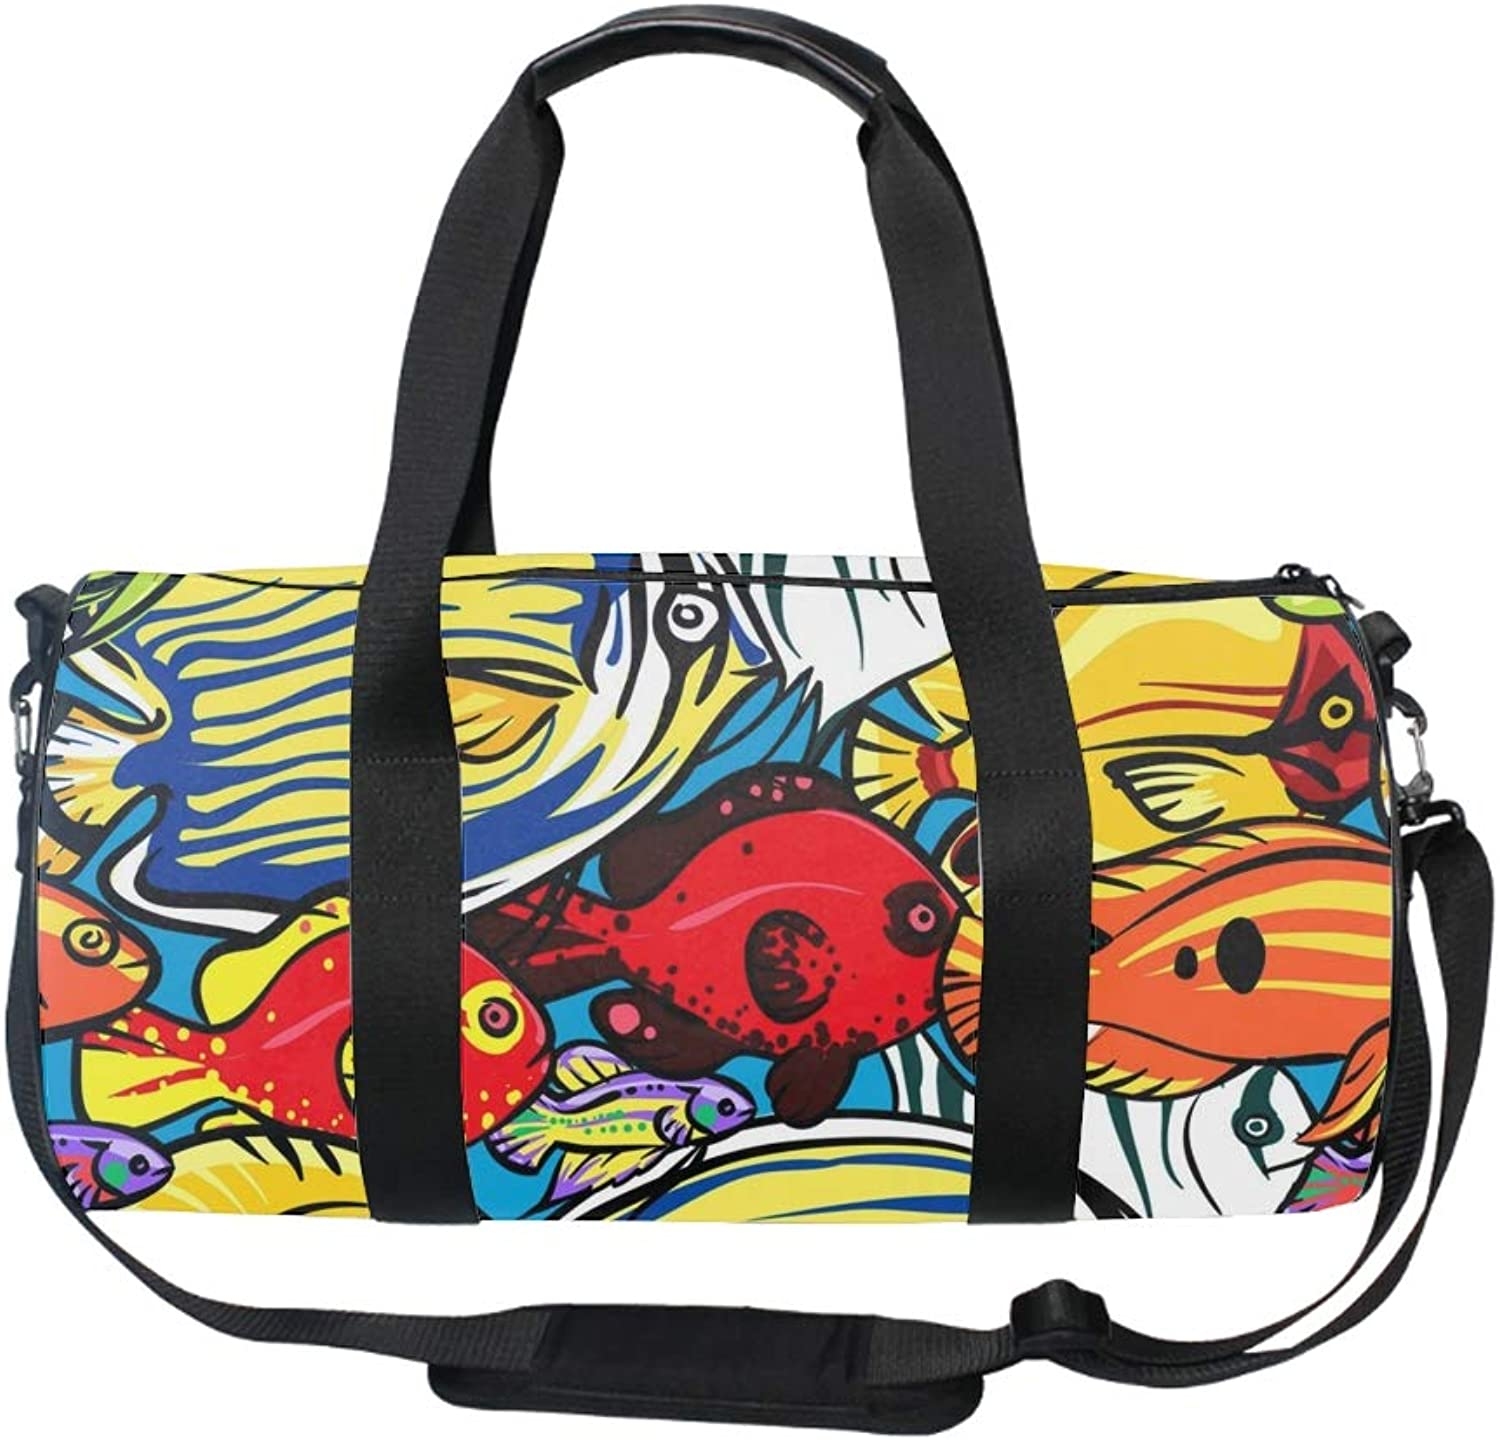 17  Blank Sports Duffle Bag Coral Reef Sea Life Gym Bag Travel Duffel with Adjustable Strap